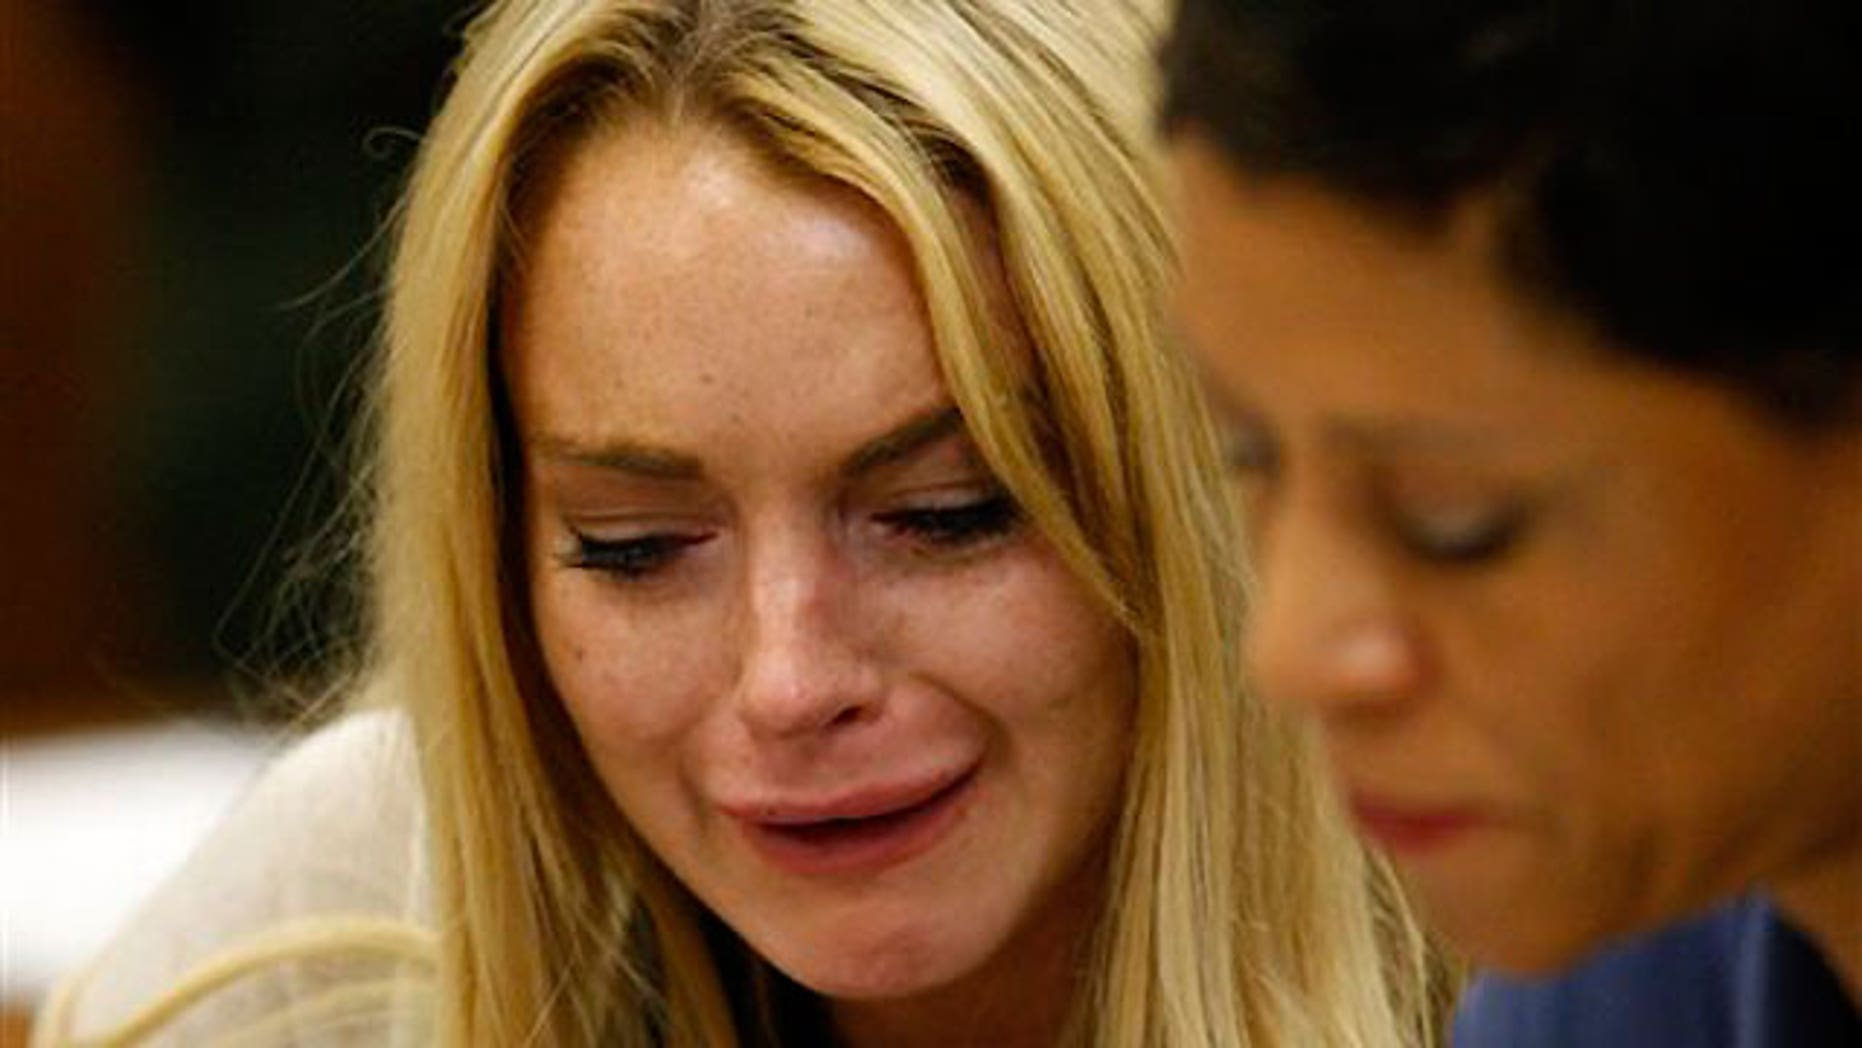 July 6: Lindsay Lohan tearfully reacts as a L.A. judge sentences her to 90 days in jail and 90 in an in-patient rehab facility.